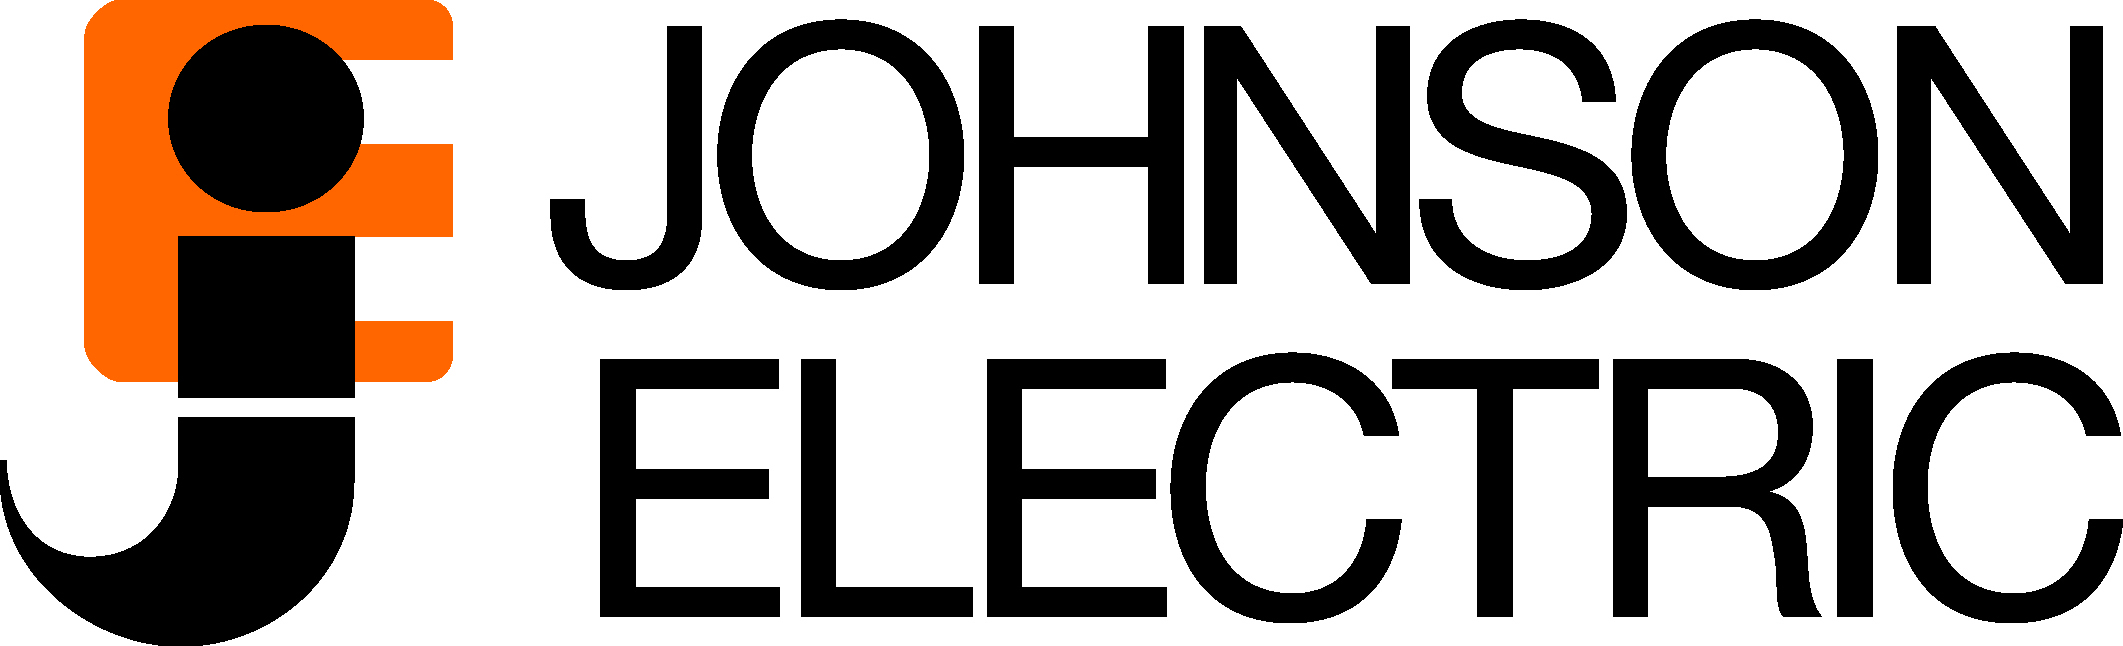 Johnson Electric Reports Results for The Half Year Ended 30 September 2020